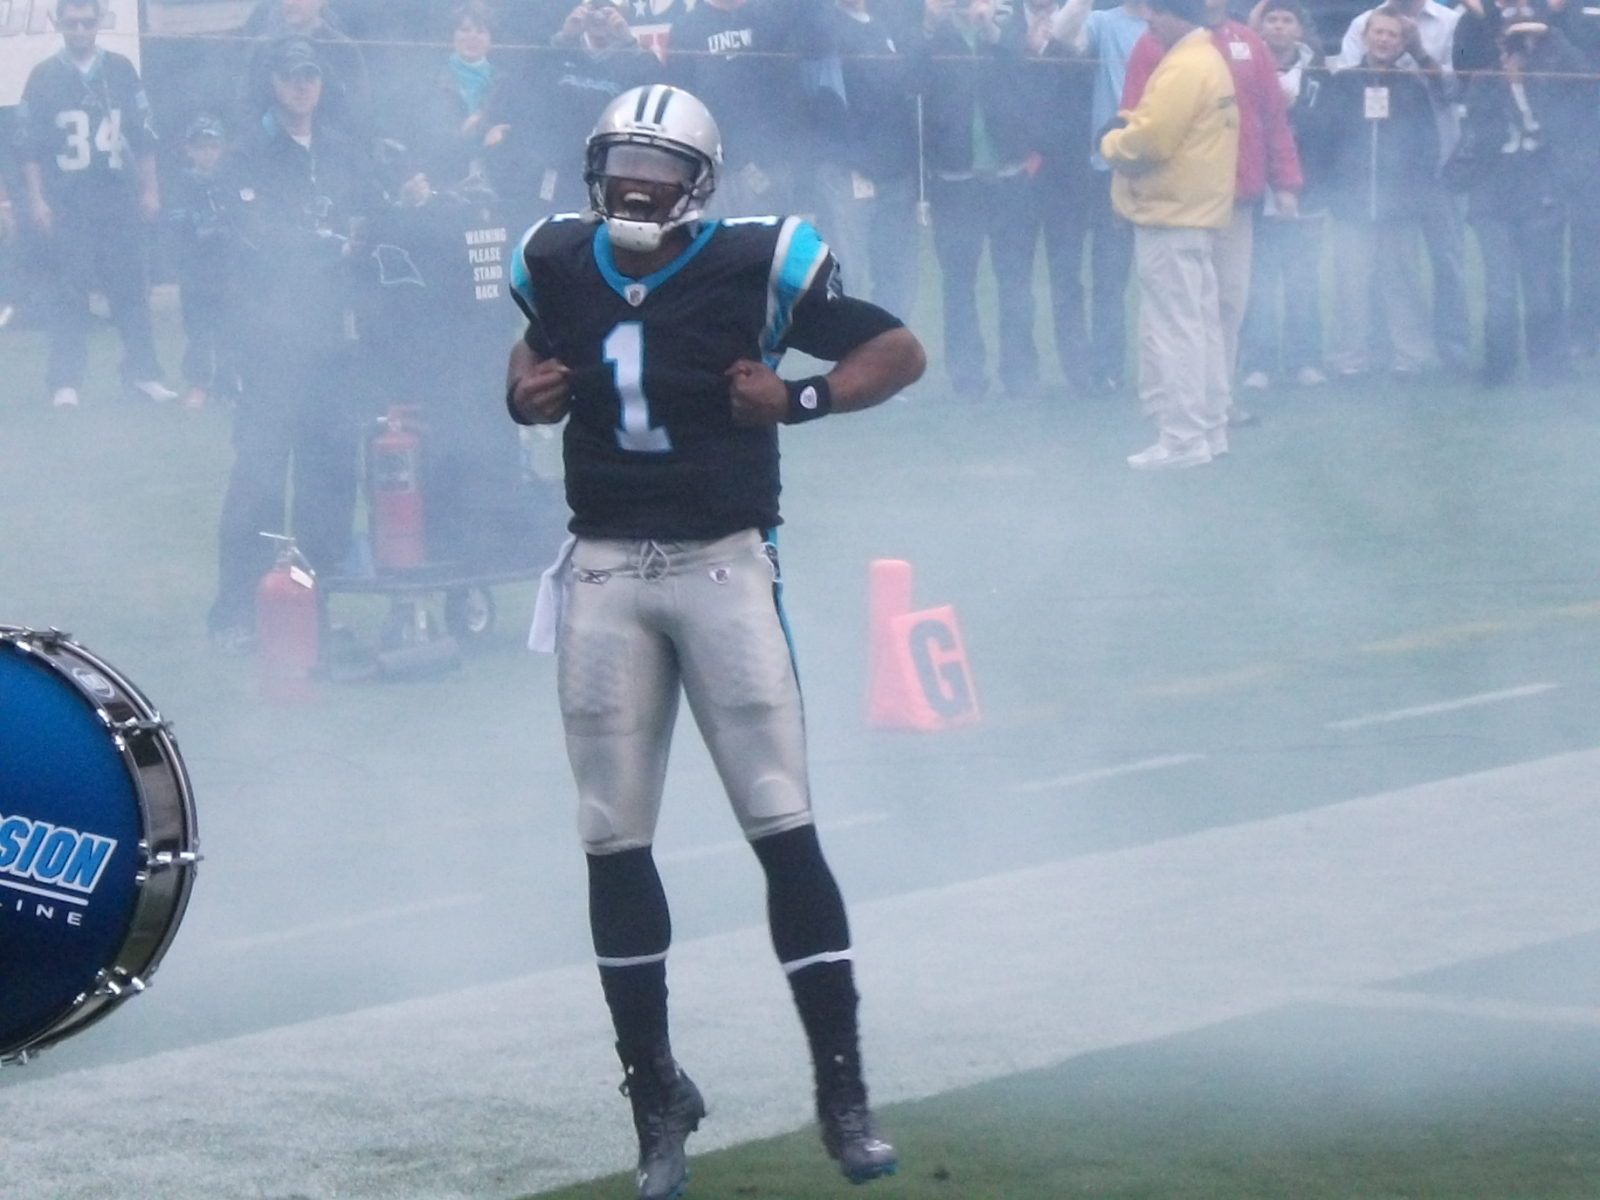 Newton coming out of the tunnel in 2011.